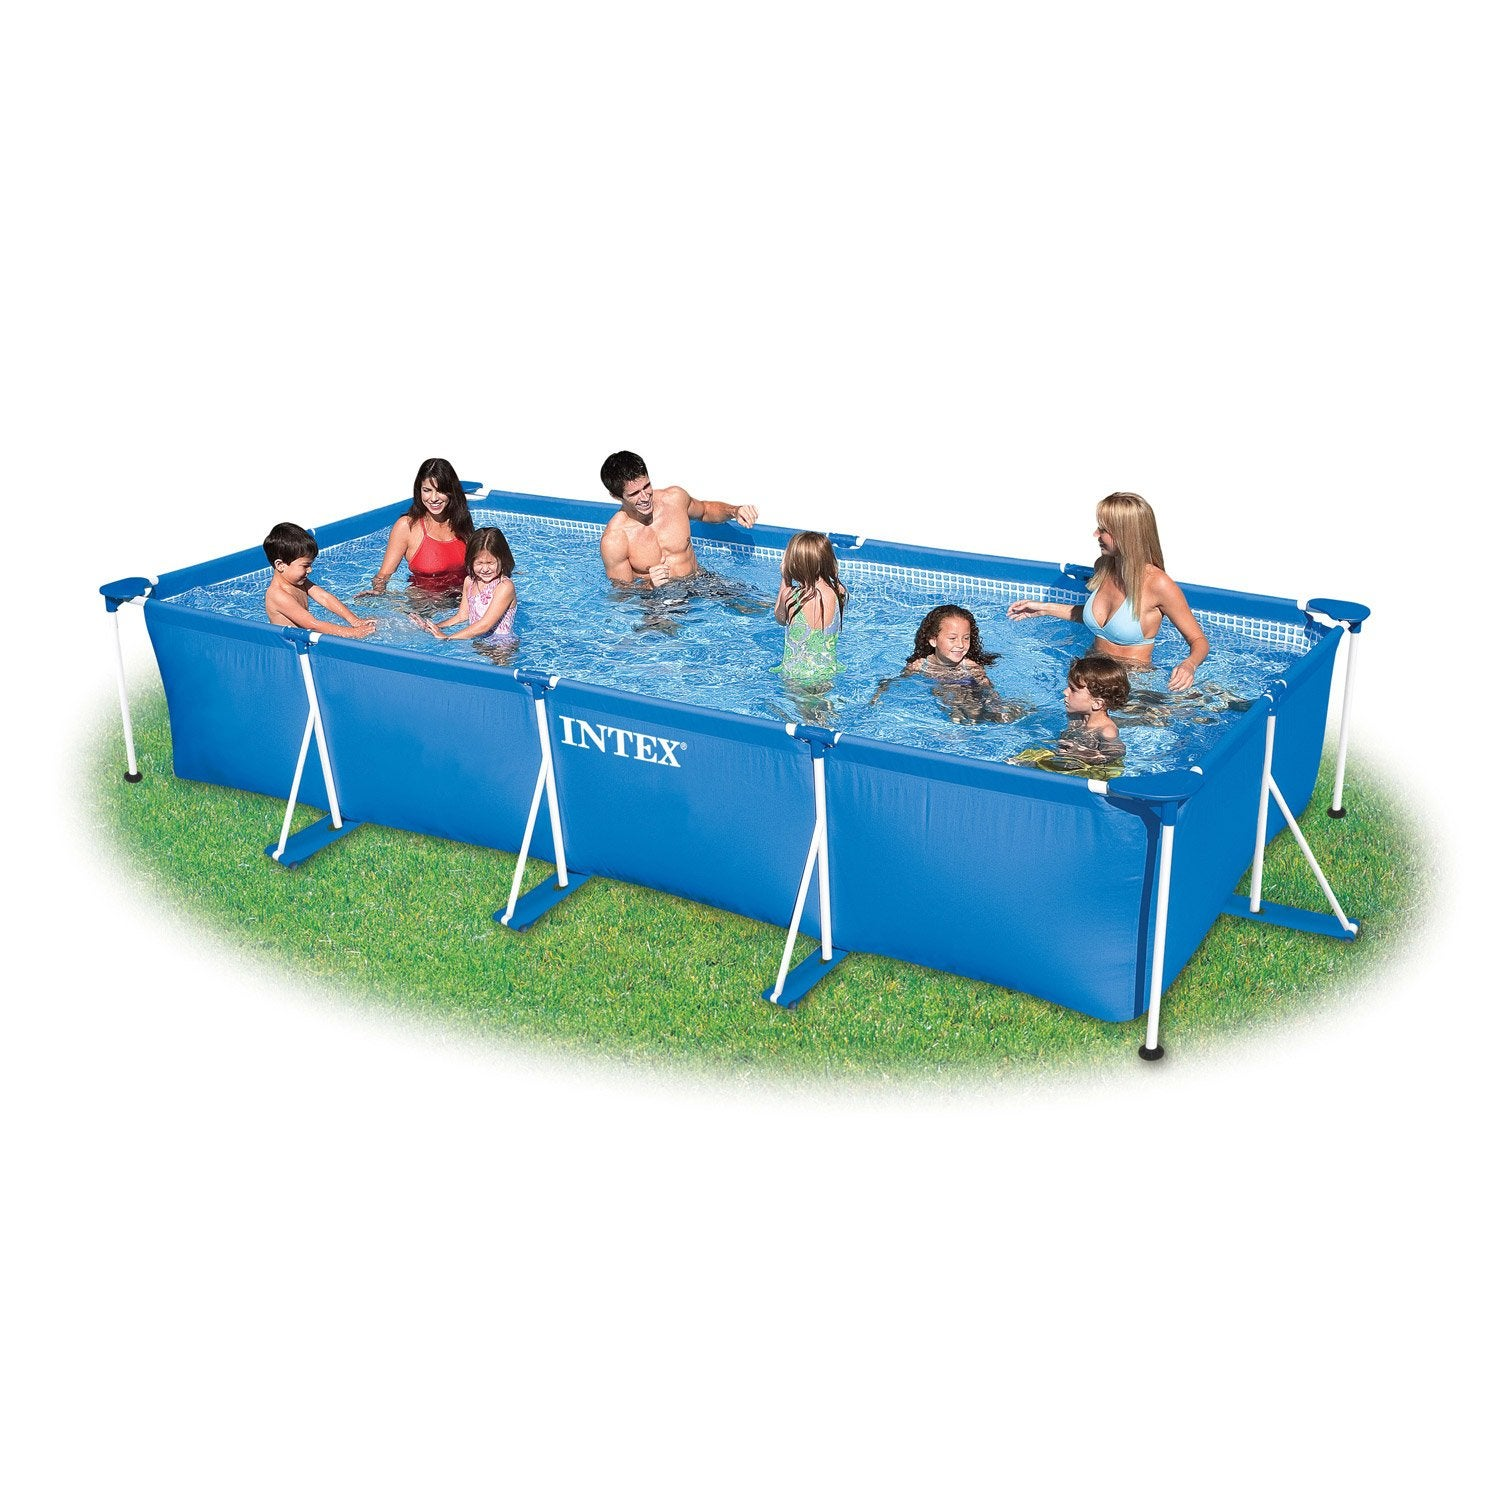 Jardin brico leclerc piscine for Piscine tubulaire intex castorama